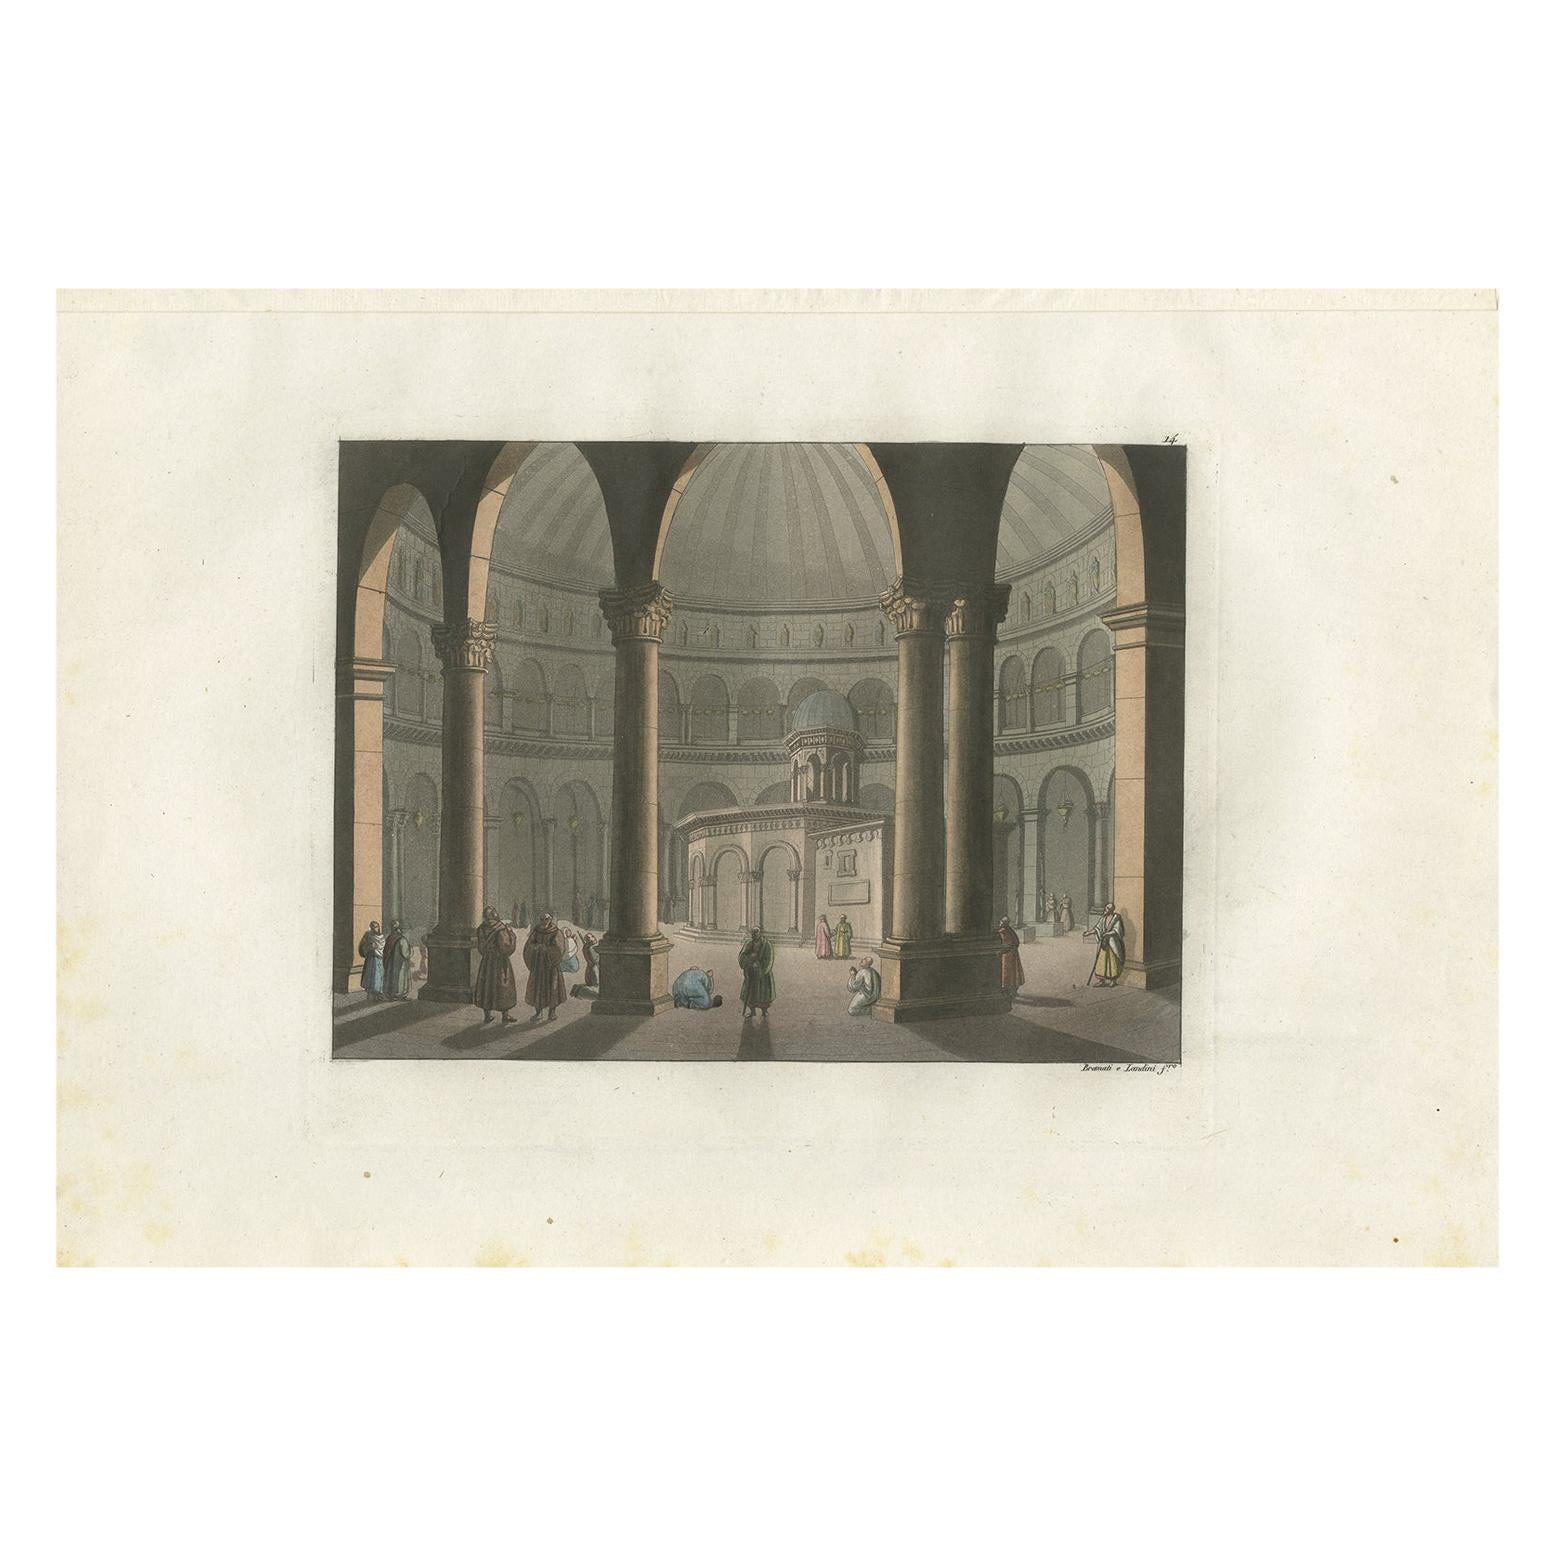 Antique Print of the Church of the Holy Sepulchre by Ferrario '1831'